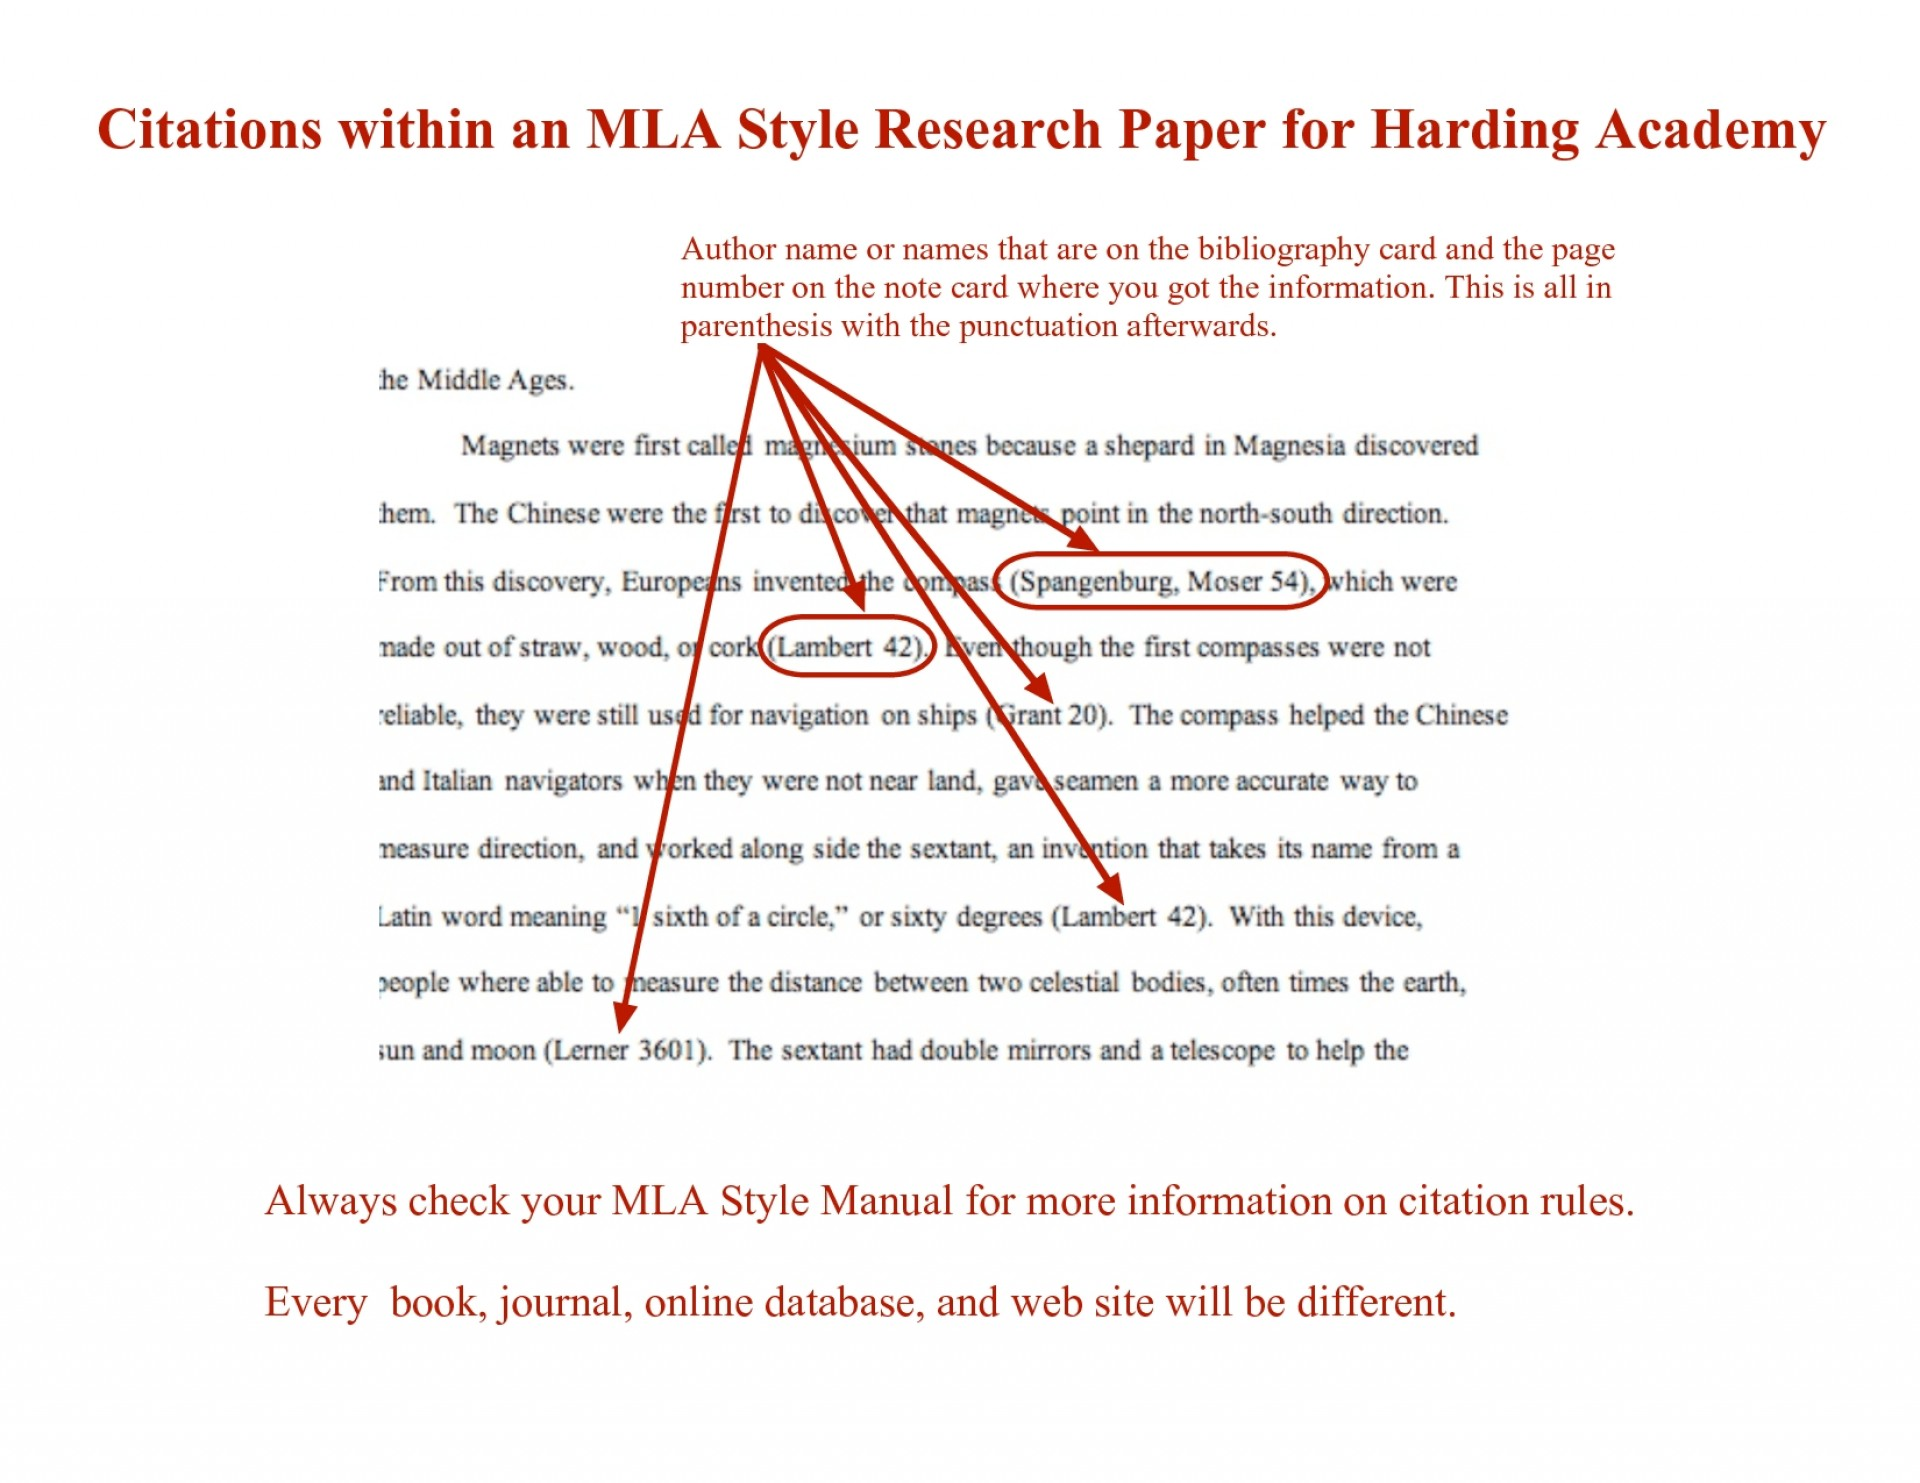 014 How To Cite An Essay In Book Mla Example Collection Of Solutions Quote From Website Stunning Research Paper Best A Article Style 8 1920